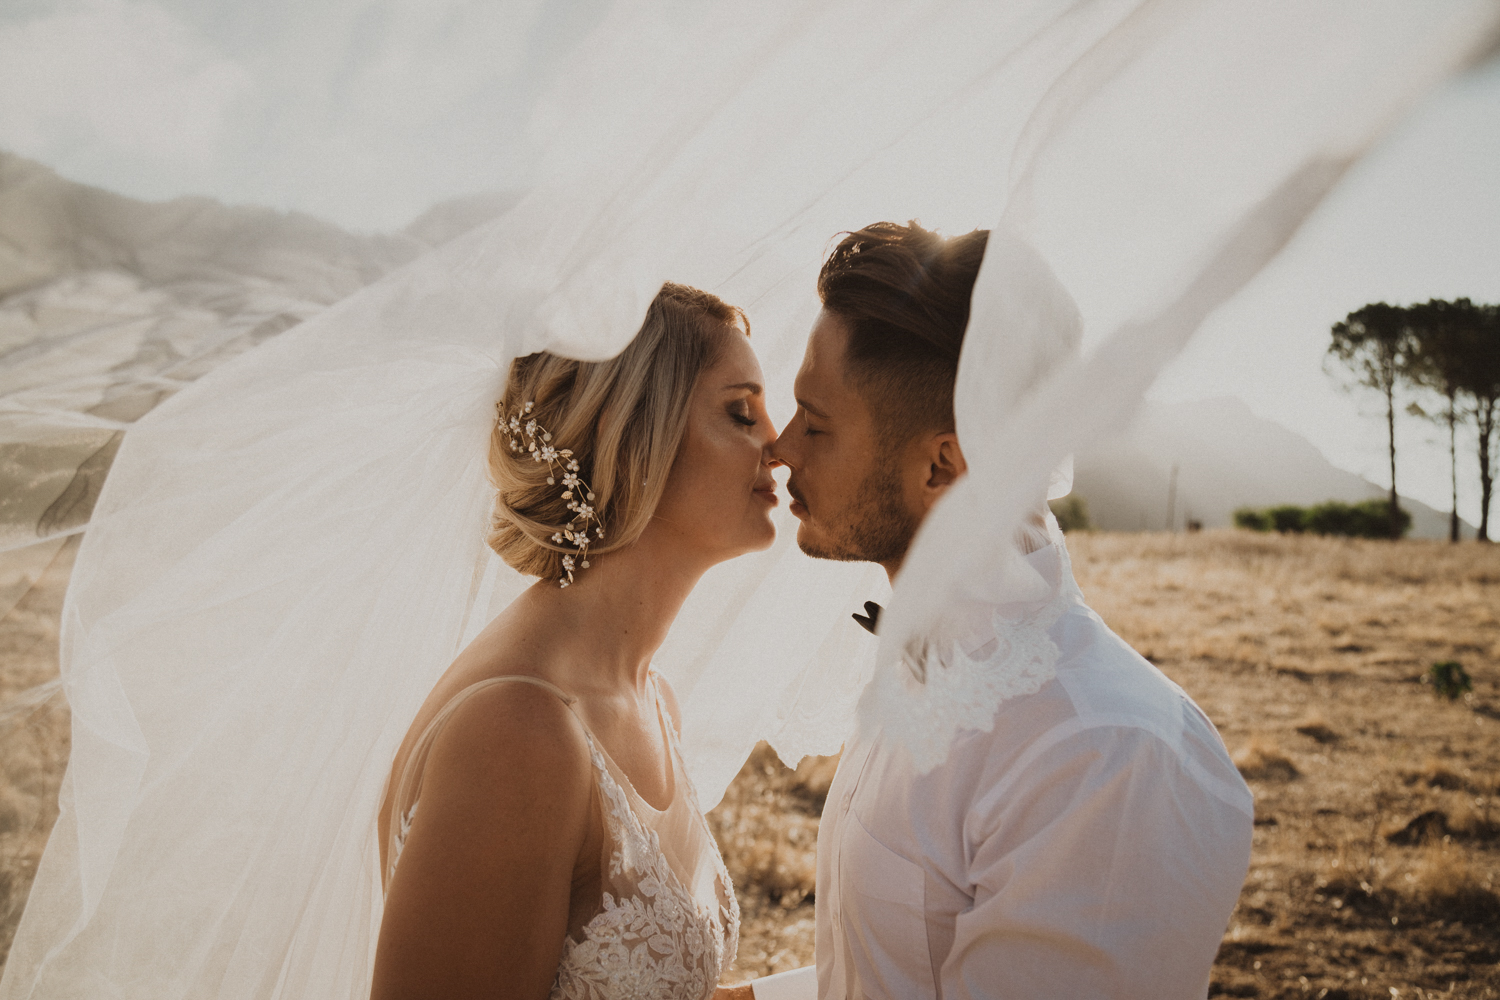 Elegant Country Wedding Cape Town - Bianca Asher Photography-65.jpg